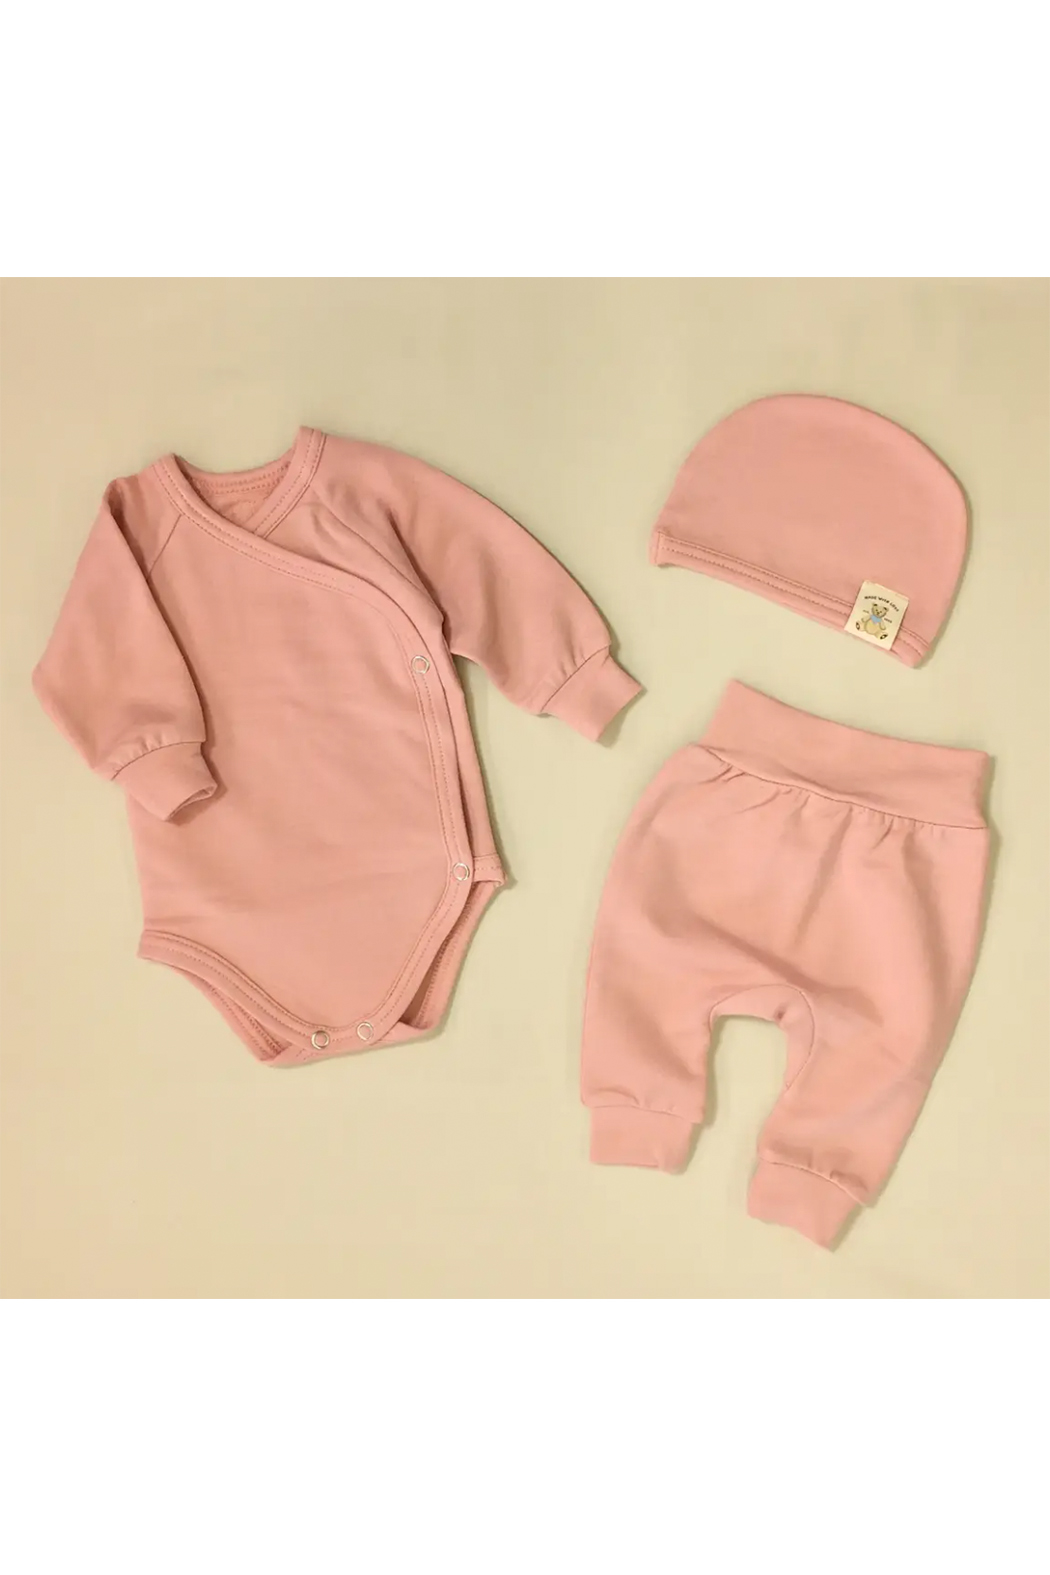 Itty Bitty Baby Bamboo Layette Set - Preterm 3 (3-5 lbs) - Front Cropped Image